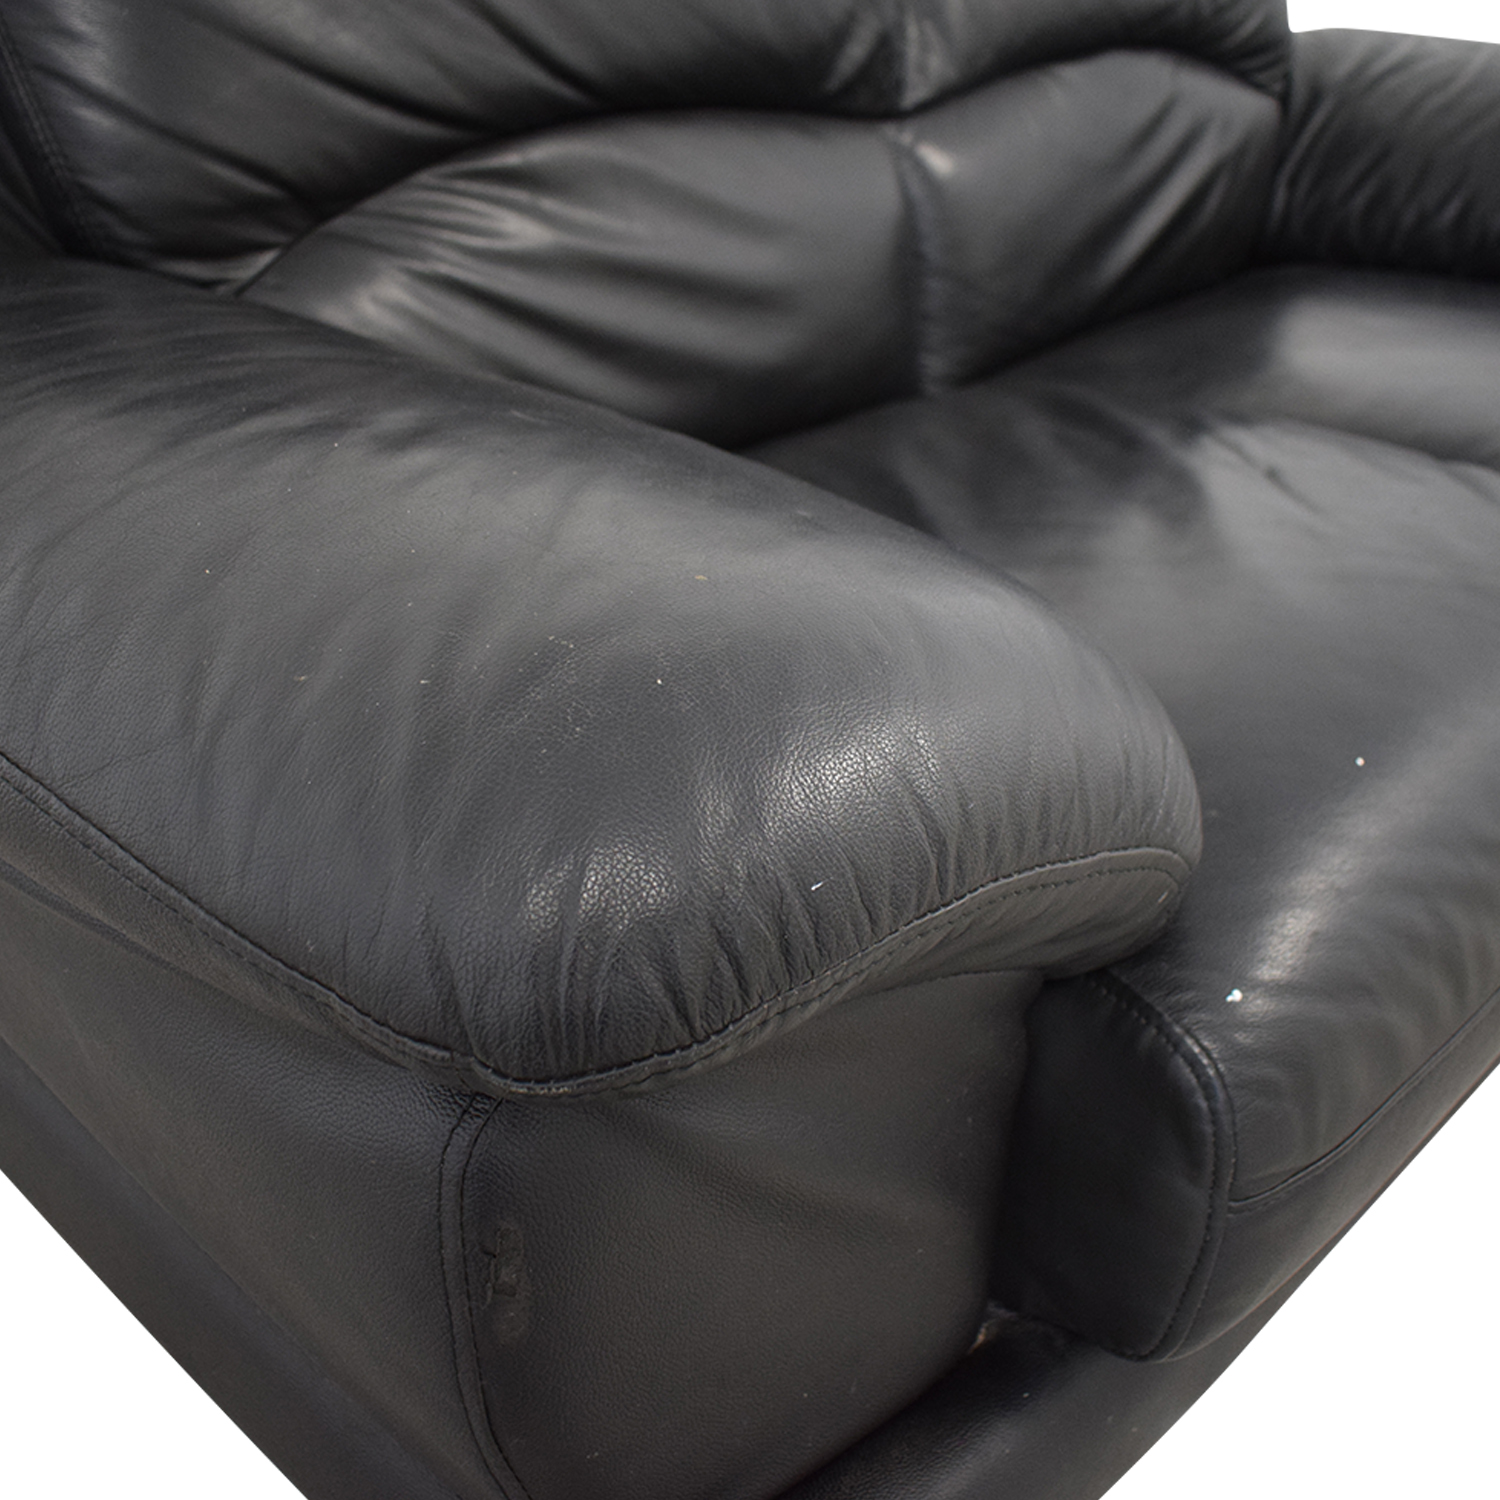 shop Ashley Furniture Ashley Furniture Leather Sofa online